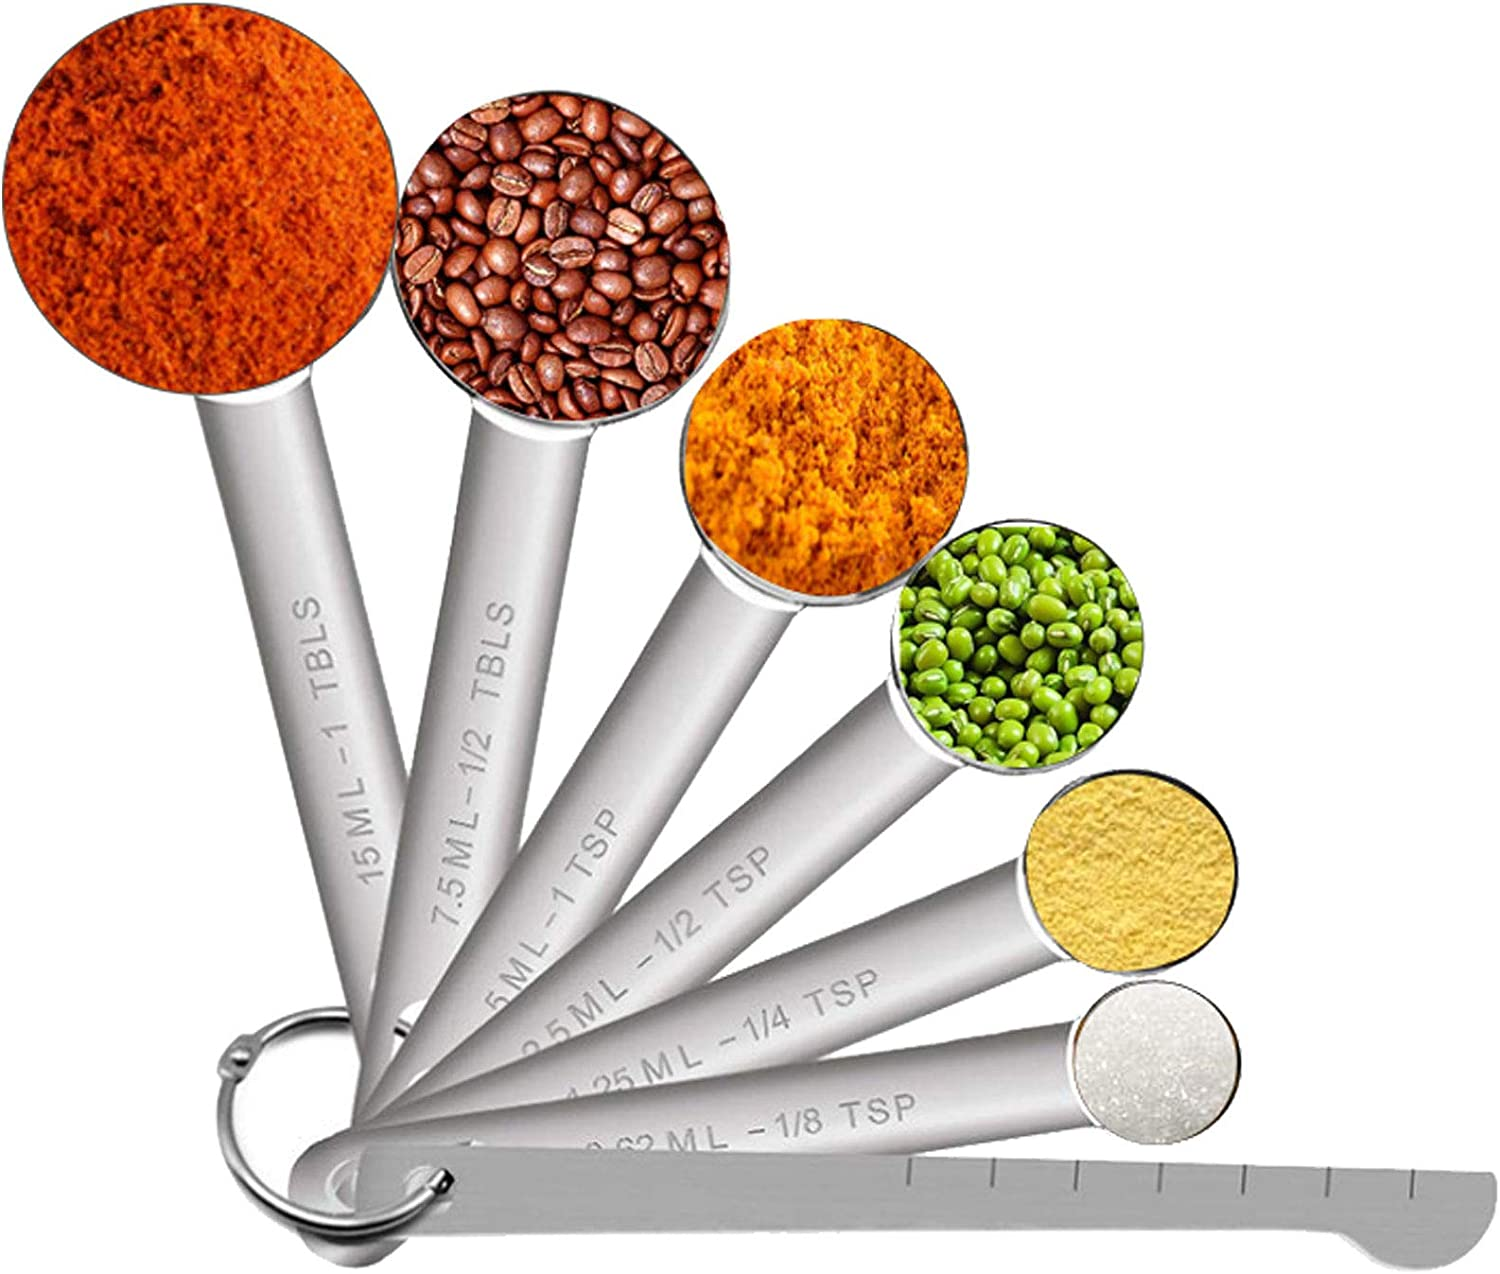 GTGR Measuring Spoons Set Stainless Steel for Cooking Baking Dry or Liquid, Fits in Spice Jar Metal Measuring Spoons Set of 7